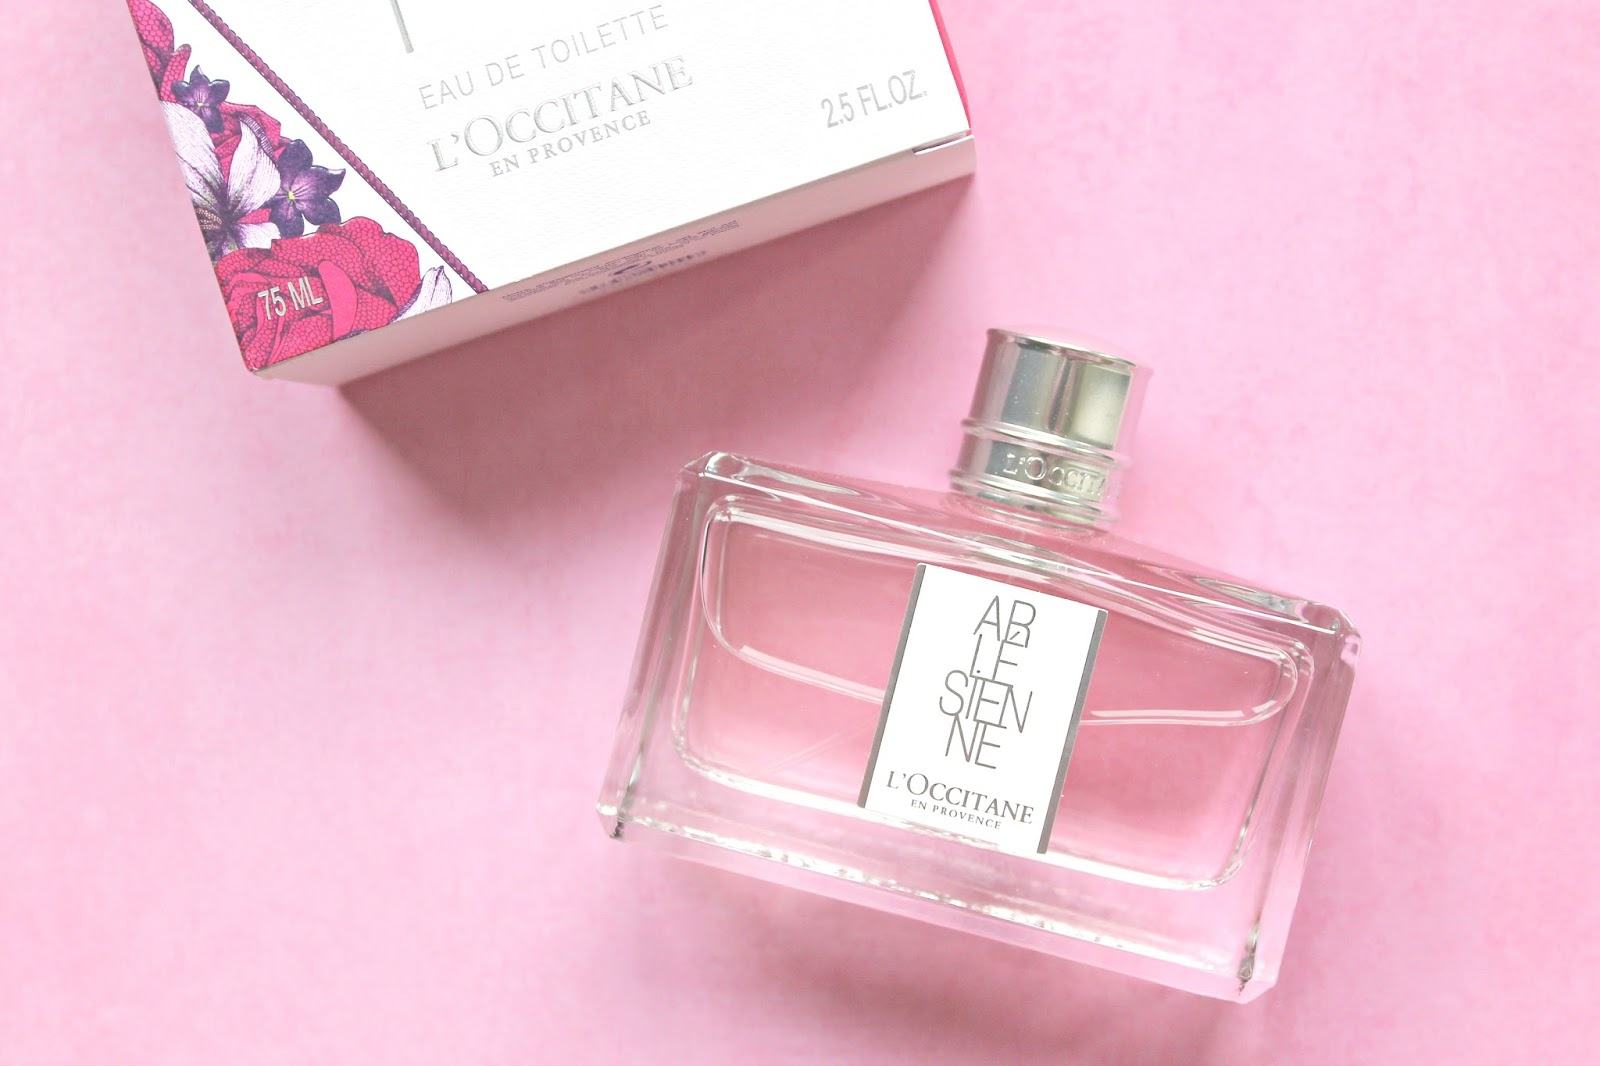 L'Occitane Arlésienne eau de toilette review